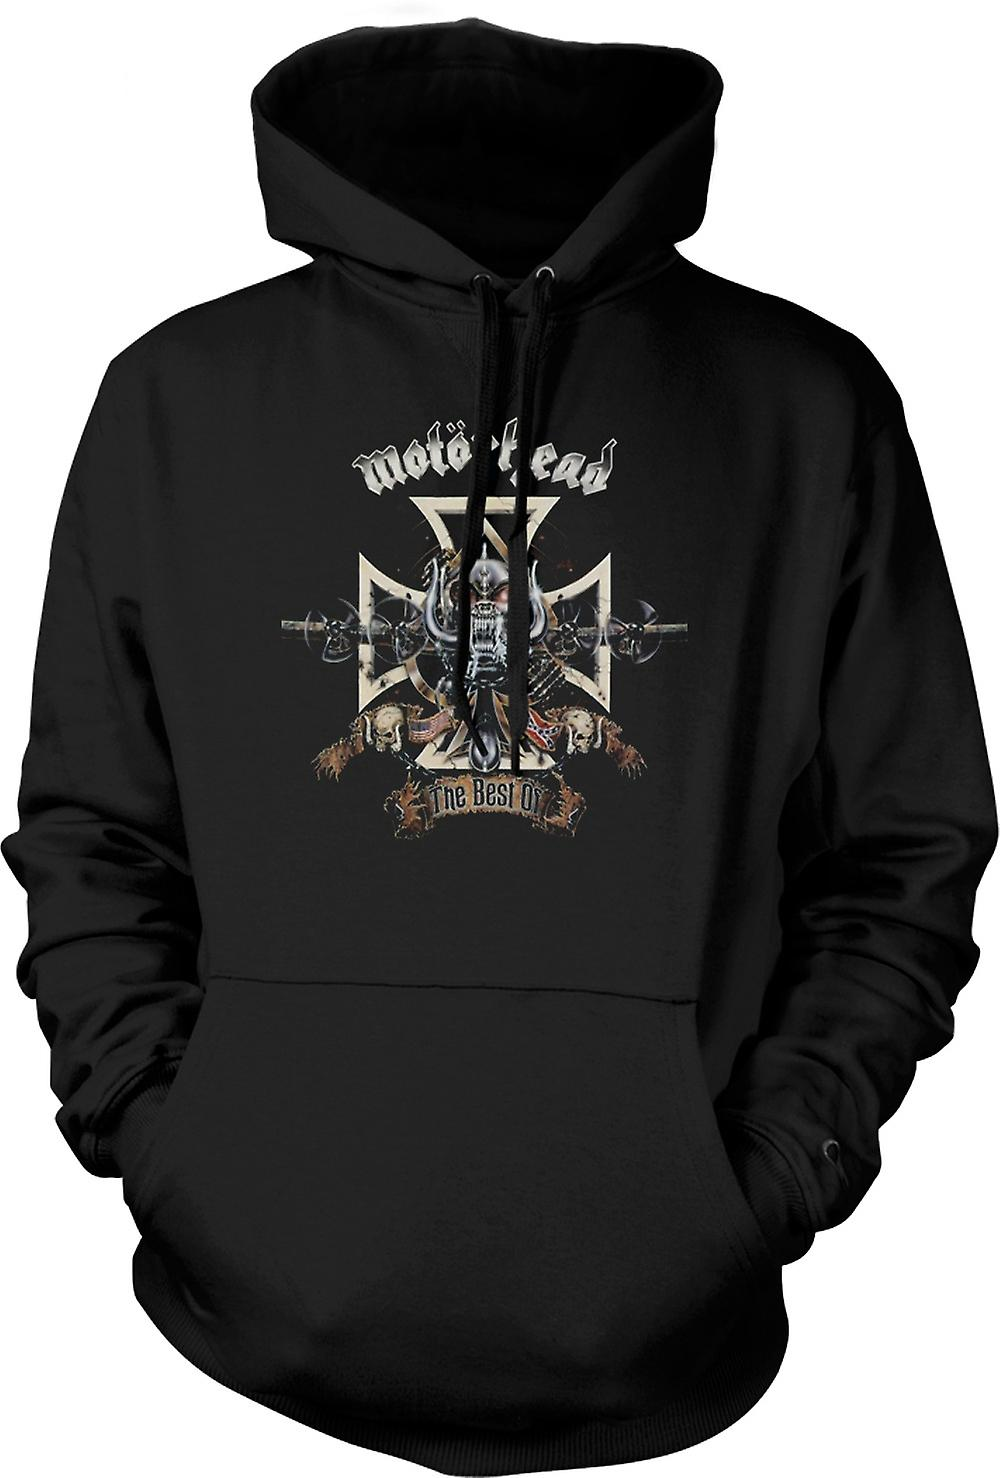 Mens Hoodie - Motorhead - Best Of Rock Metal